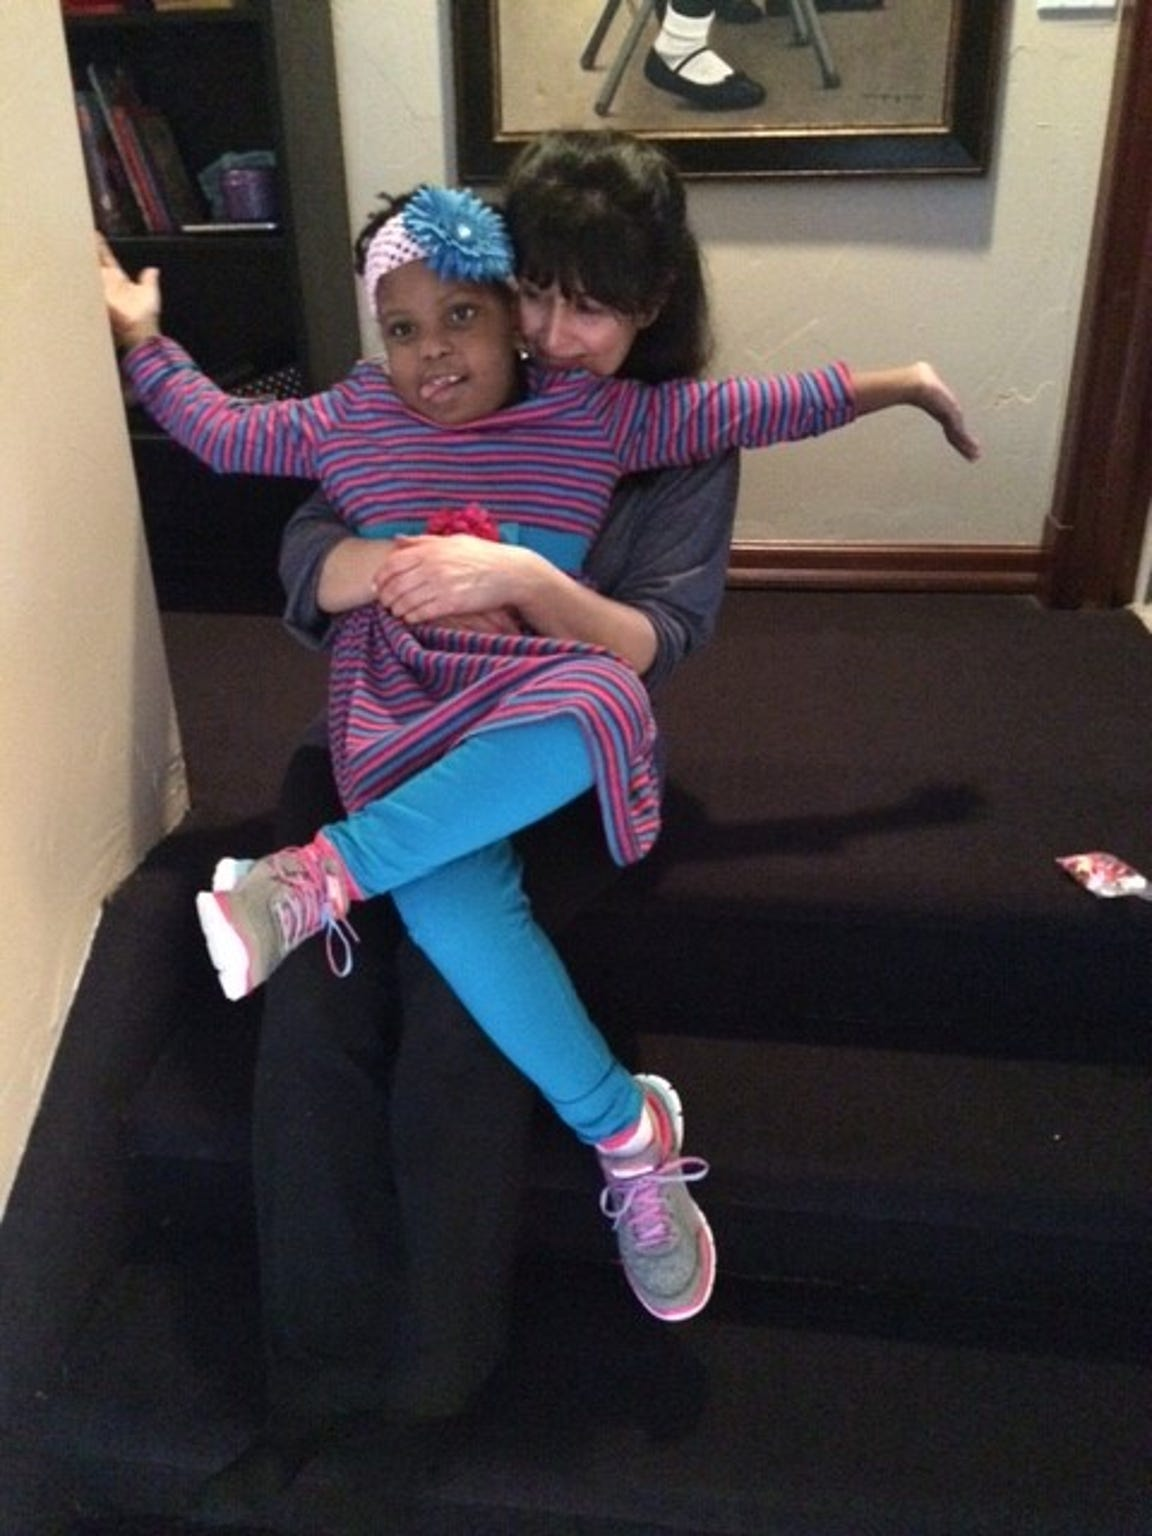 Chika and Janine Albom goof around in March 2016. The early months of that year allowed a small healthier window in Chika's cancer battle.